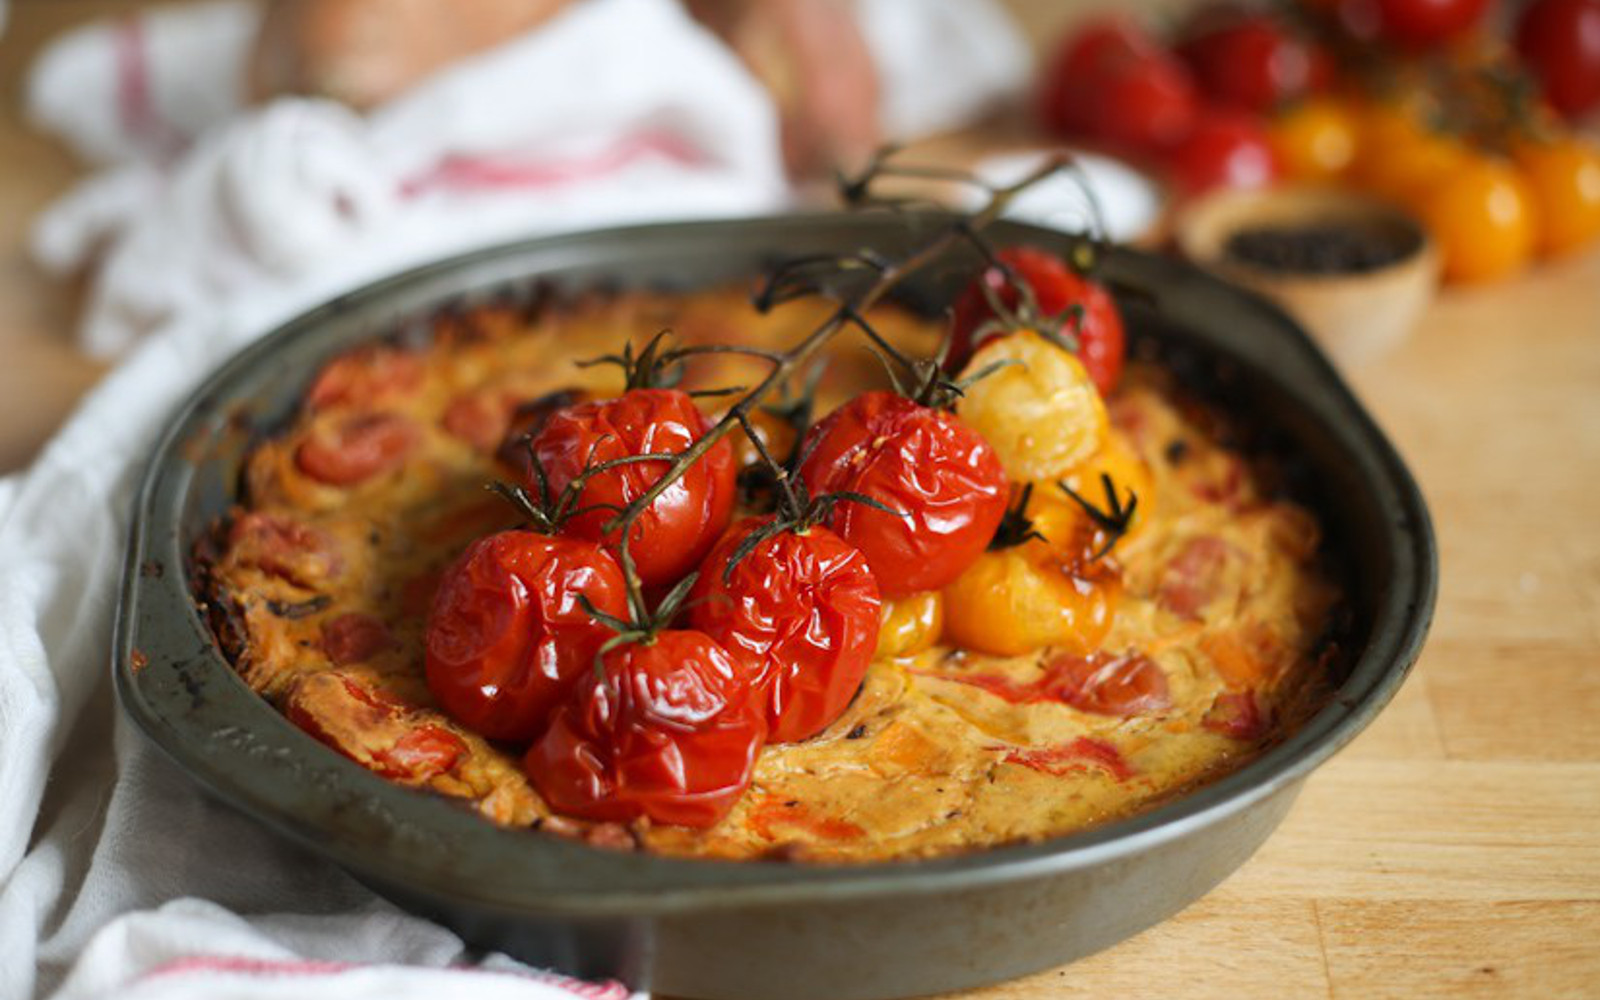 Roasted Red Pepper and Tomato Quiche 2